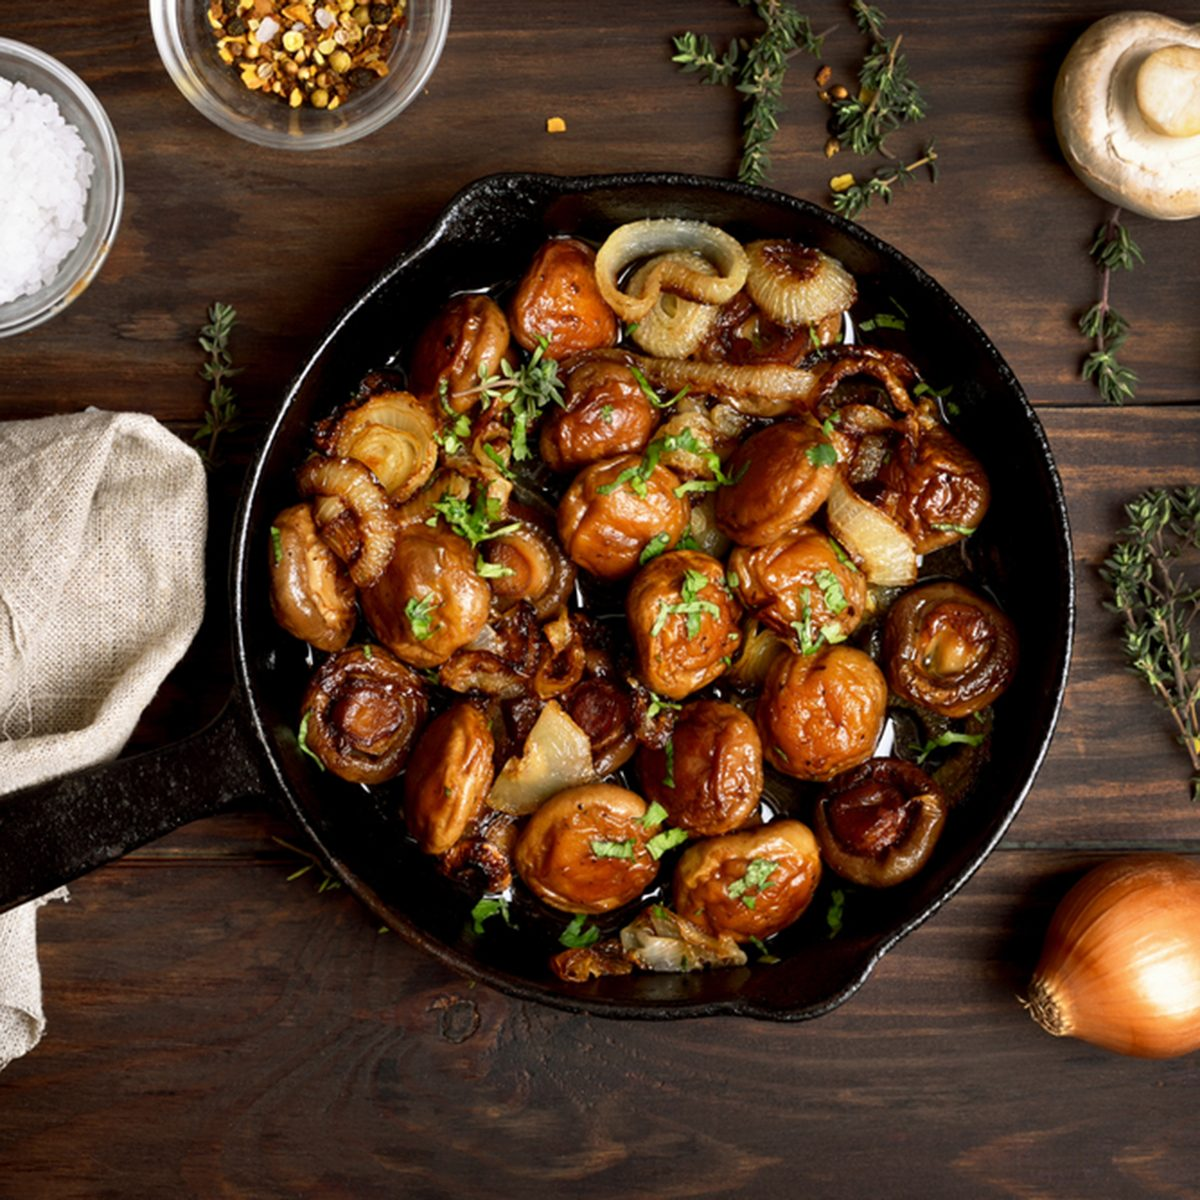 Roasted mushrooms with onion in frying pan over wooden background